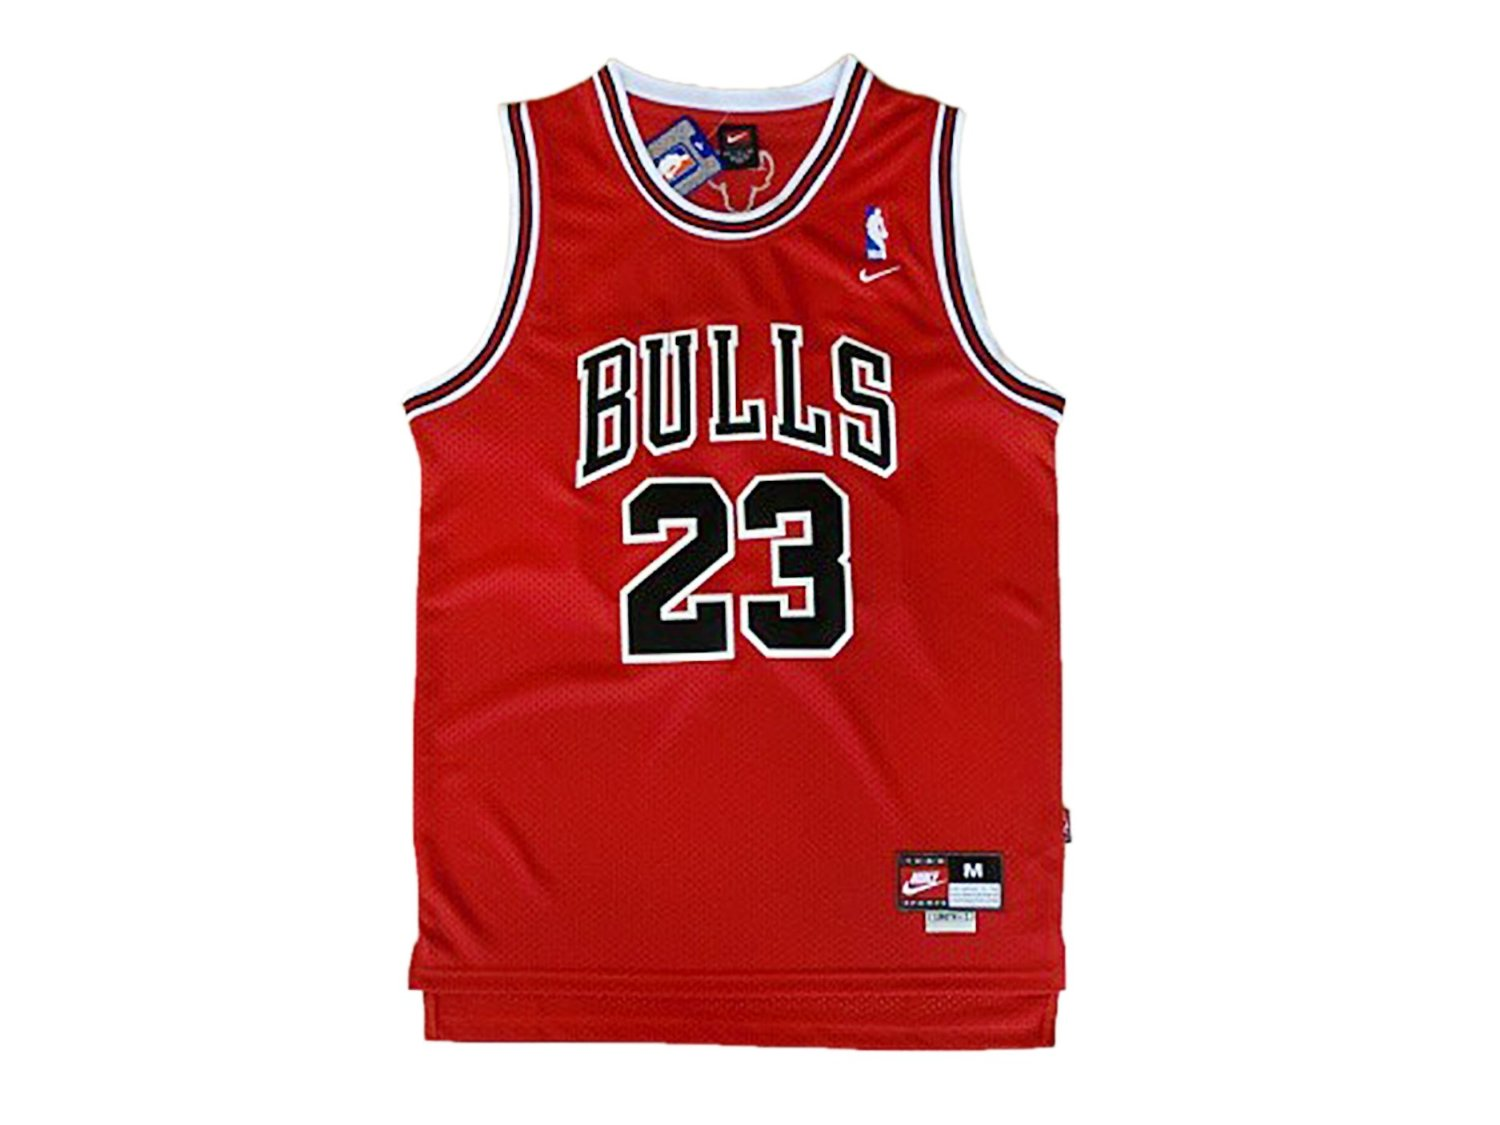 ed83c70faee Get Quotations · Kids Chicago 23 Michael Jordan Basketball Jersey For Kids  Choose Design + Free Gift (Red